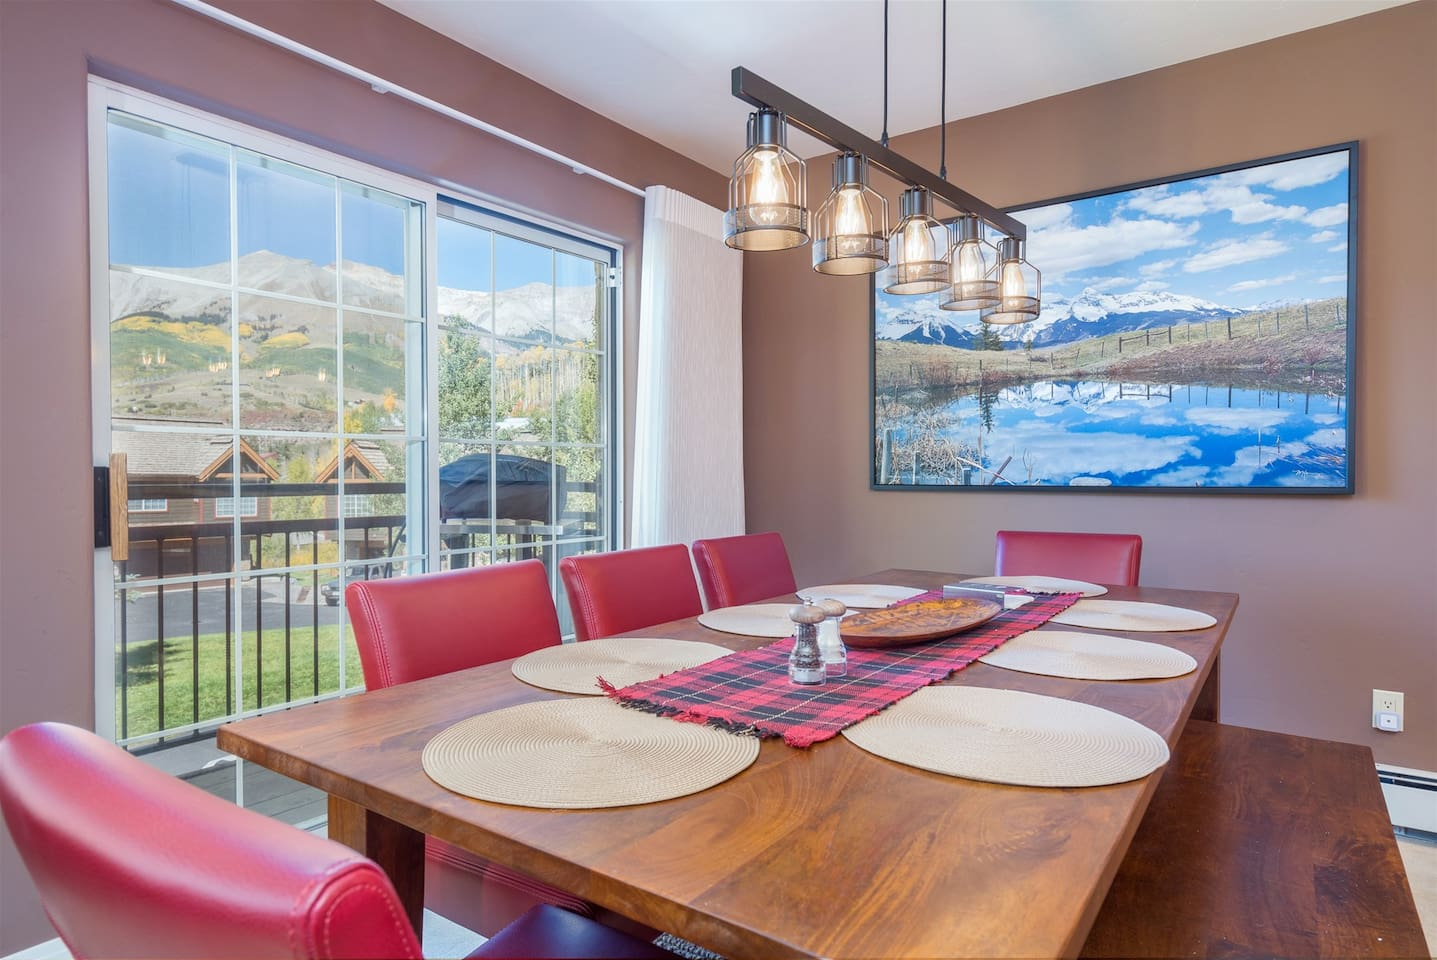 Dining area with seating for 8 as gorgeous views pour in from outside